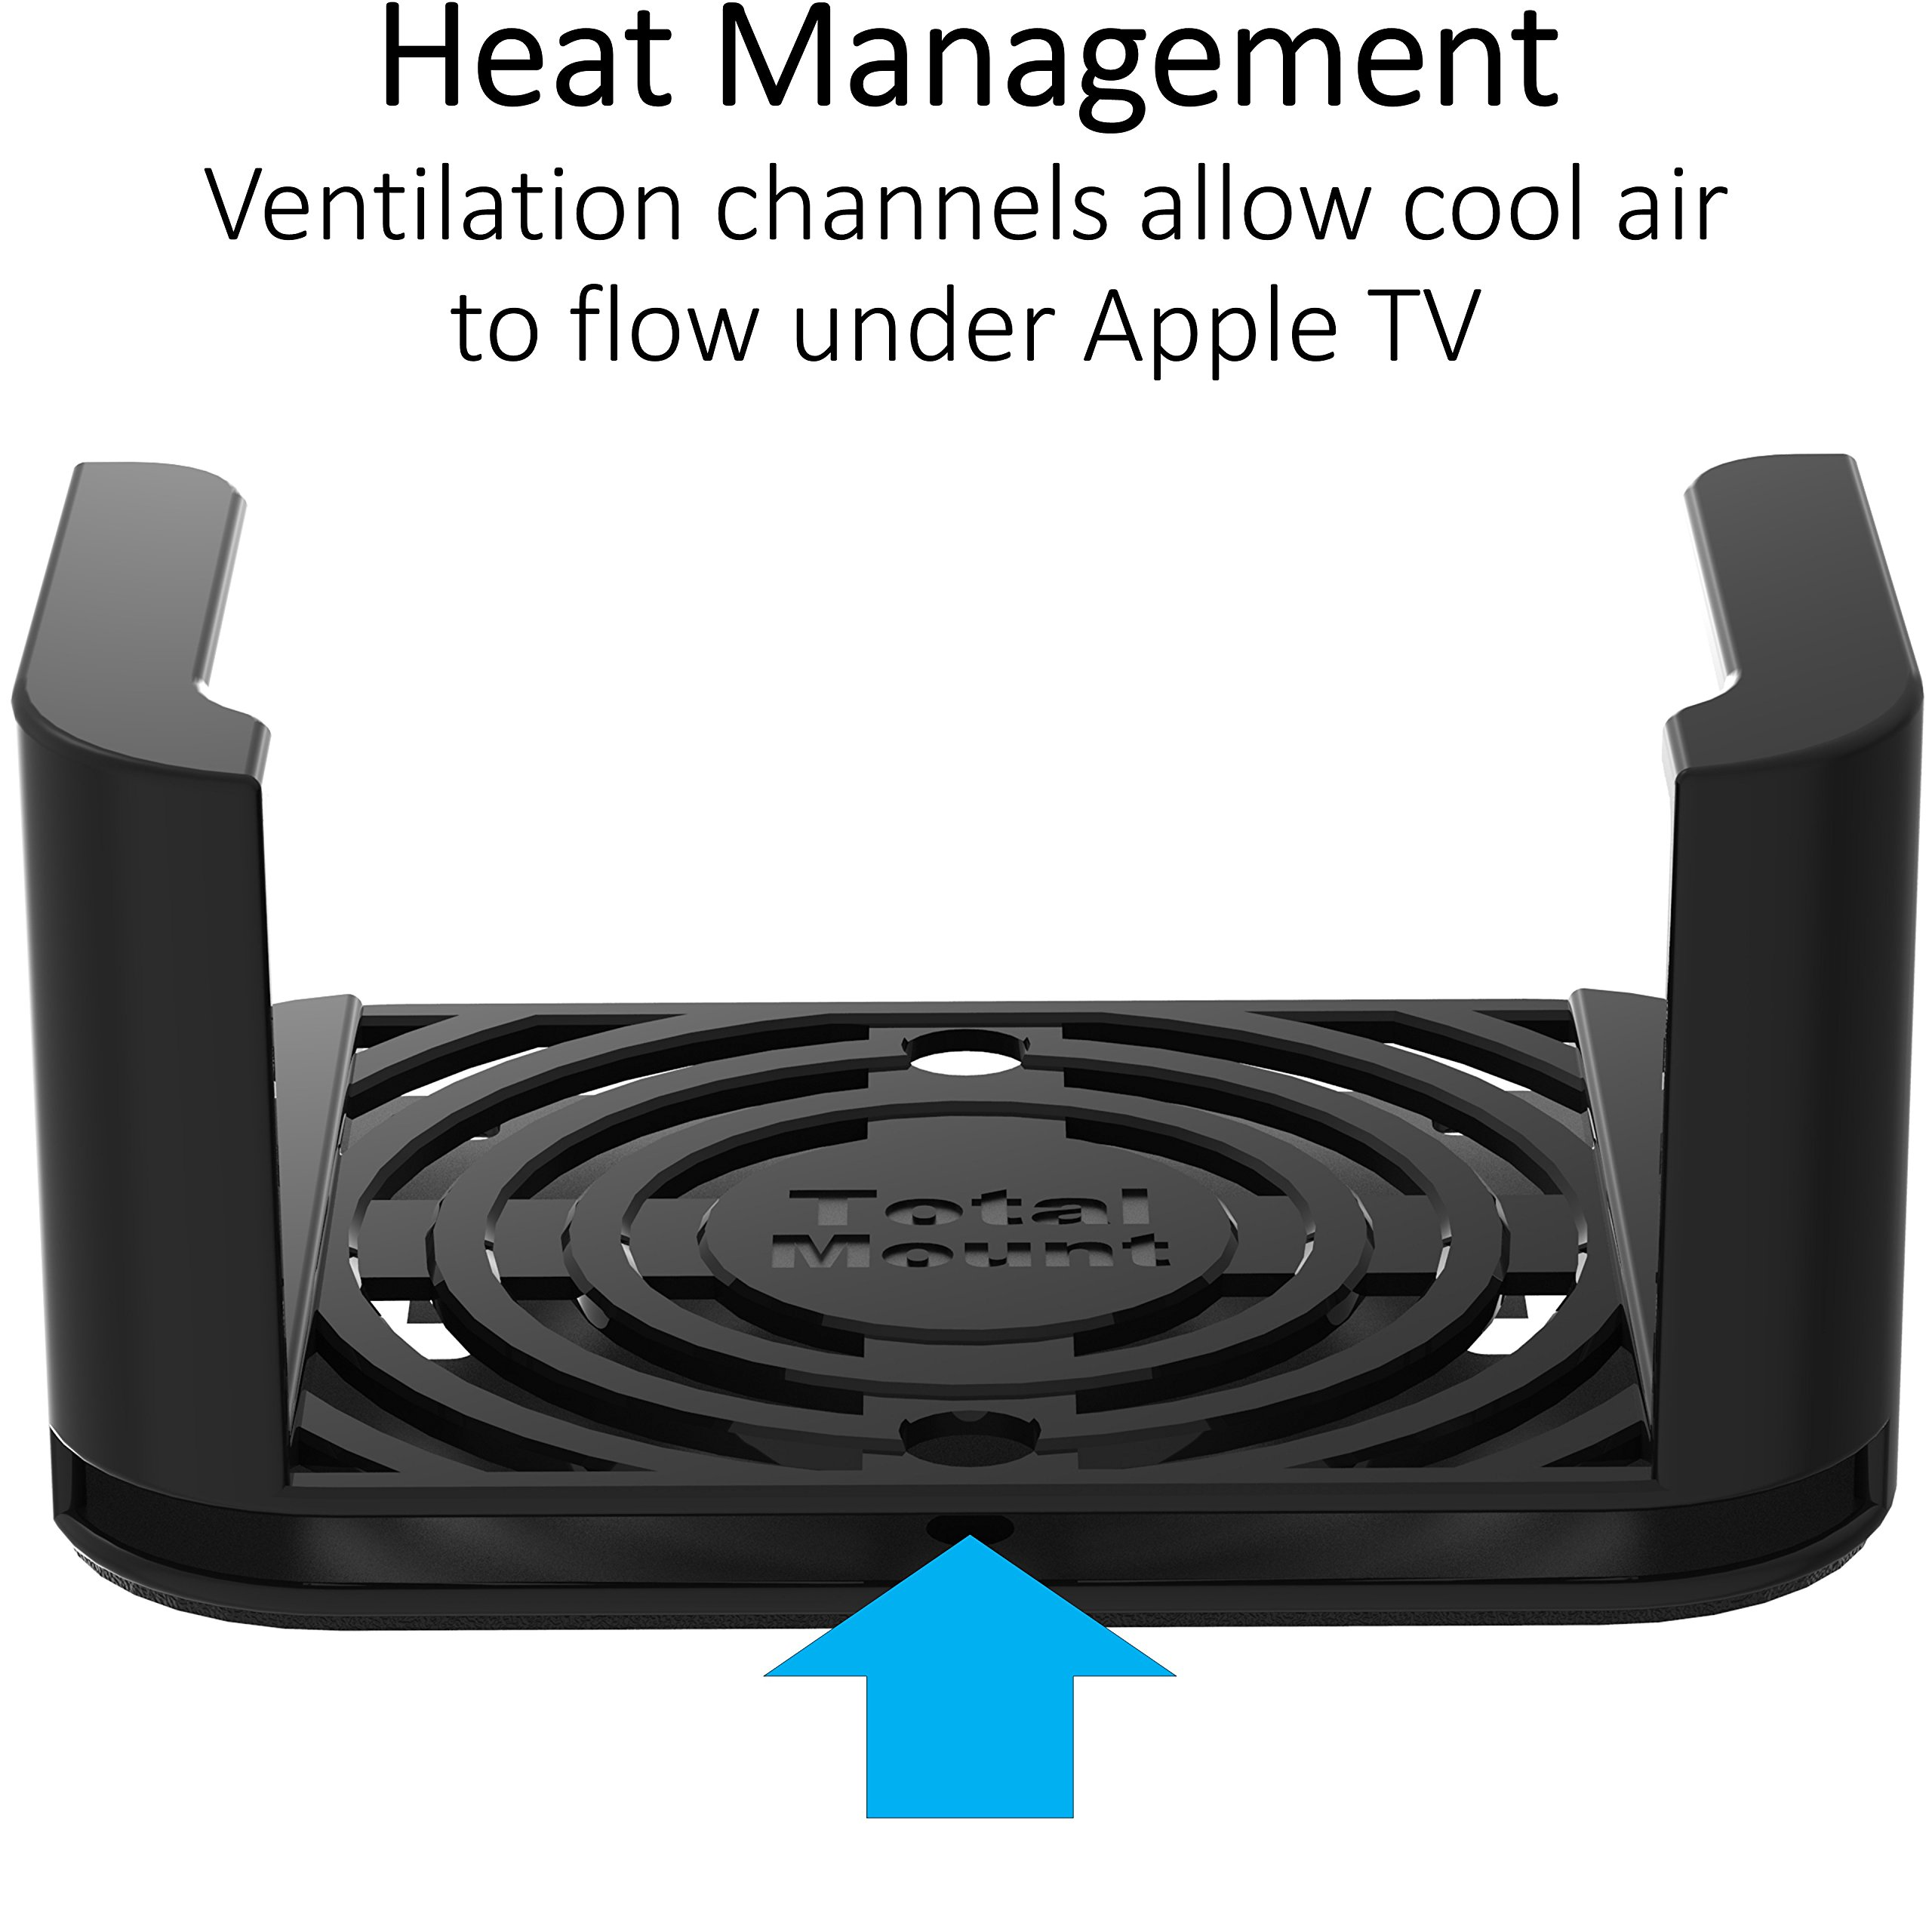 TotalMount Apple TV Mount - Compatible with all Apple TVs including Apple TV 4K by TotalMount (Image #5)